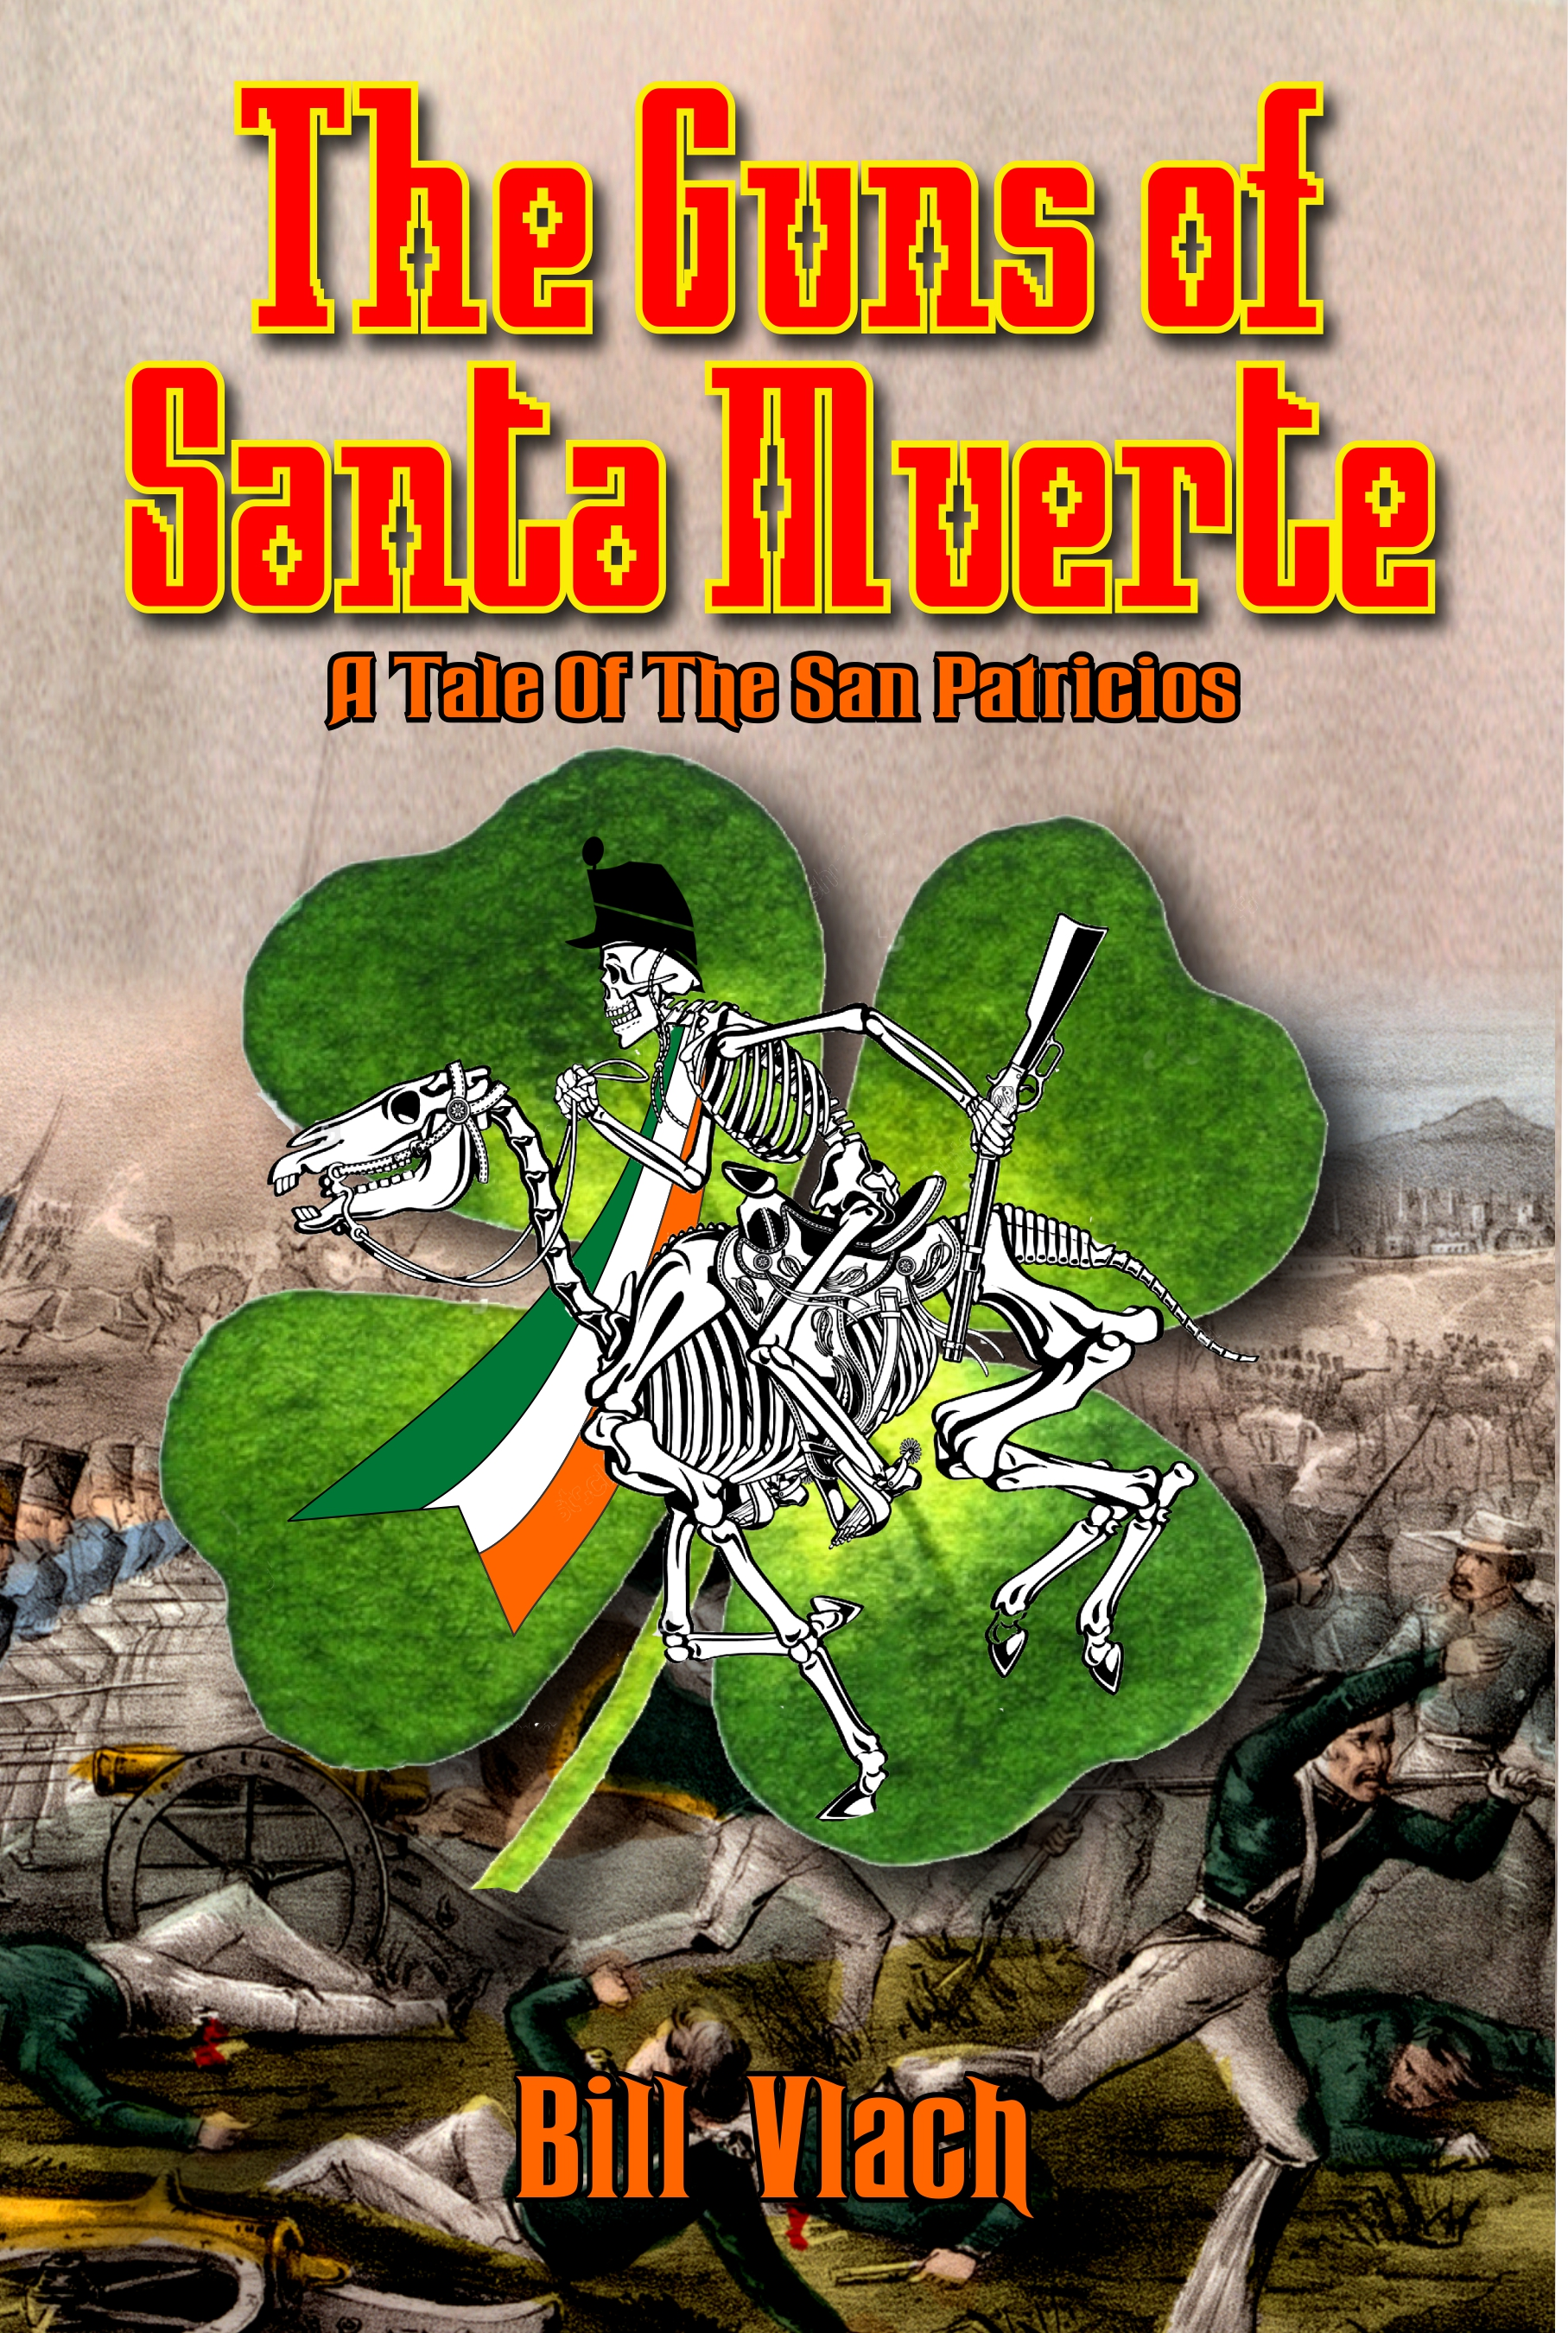 """The Epic Story of the San Patricios and the Mexican American War Told in a New Historical Novel, """"The Guns of Santa Muerte: A Tale of the San Patricios,"""" by Bill Vlach"""